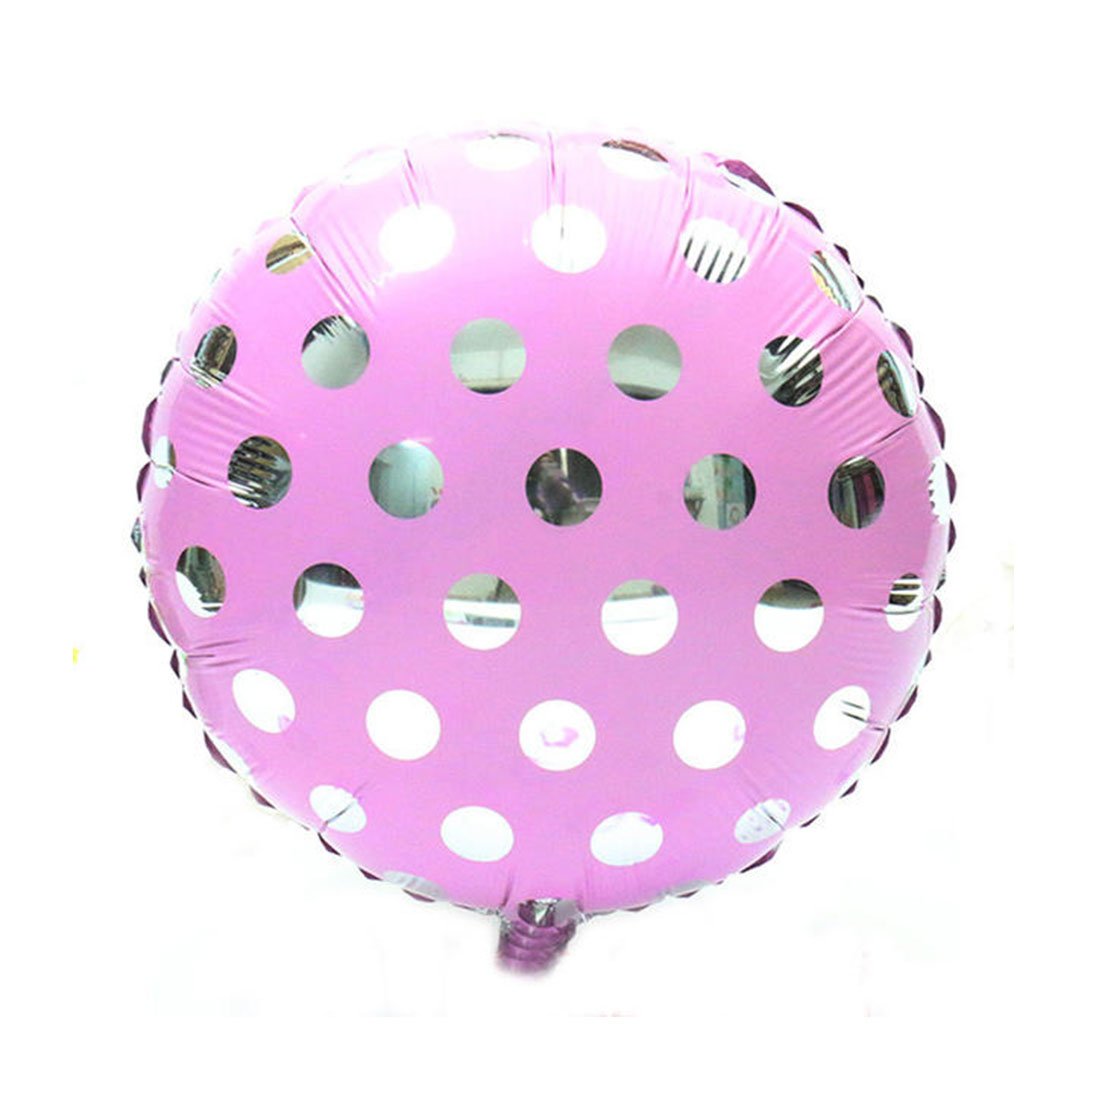 Foil Dot Printed Round Shaped Balloon Wedding Birthday Party Celebration Decor Light Purple 18 Inch